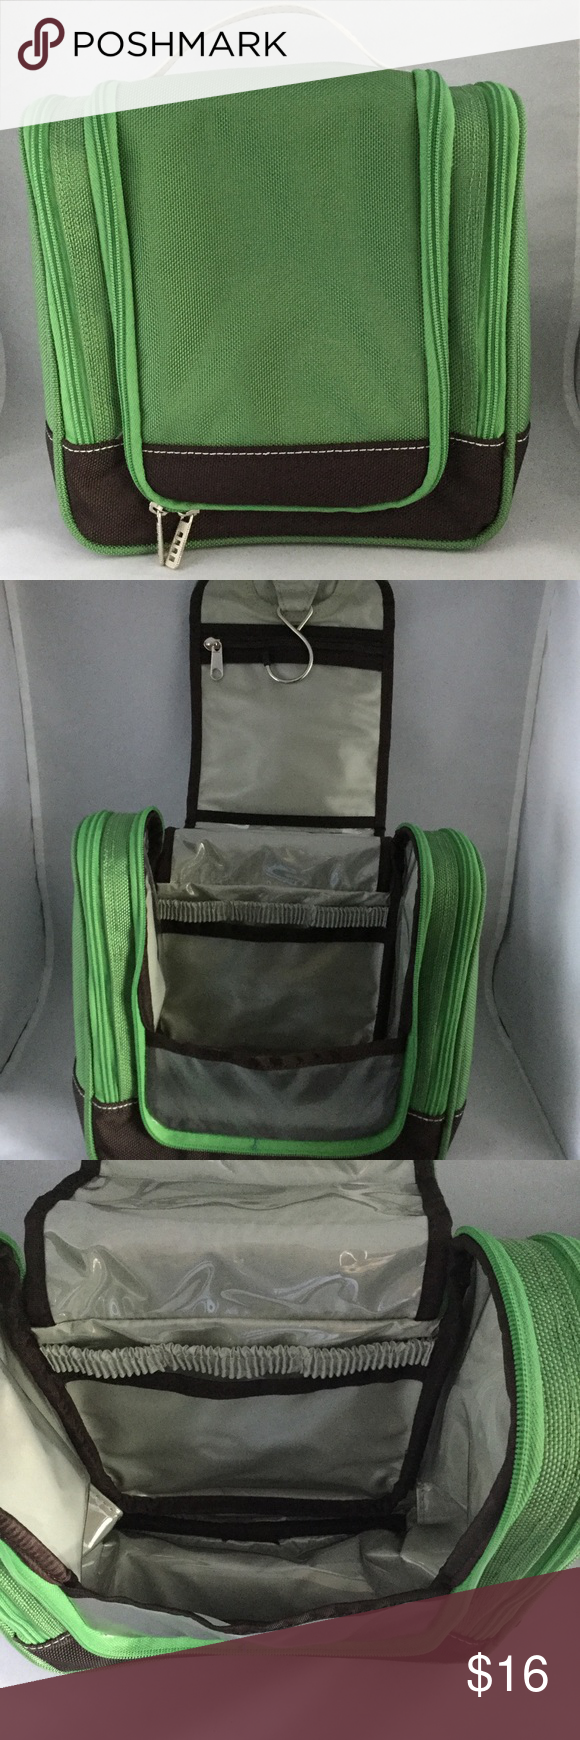 8e4121e5b7e4 Lands  End Hanging Travel Kit New